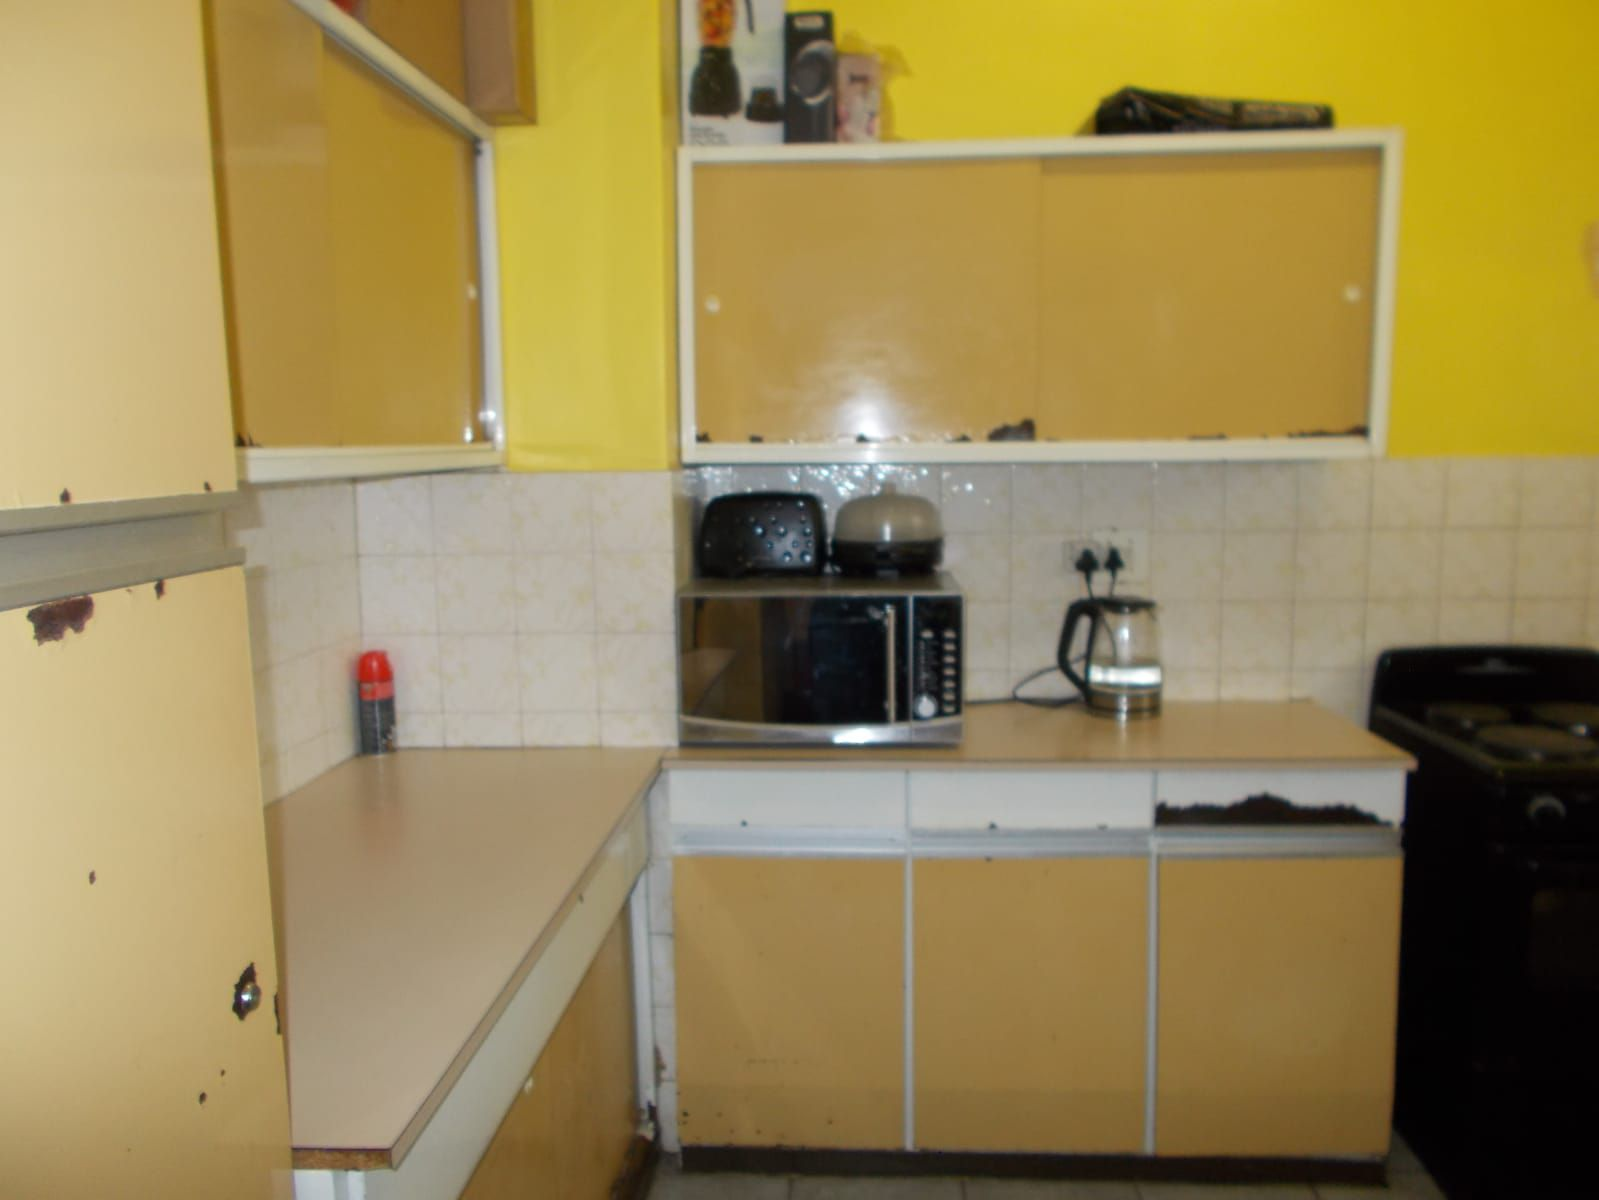 Apartment in Hillbrow - WhatsApp Image 2021-01-12 at 13.03.10 (2).jpeg